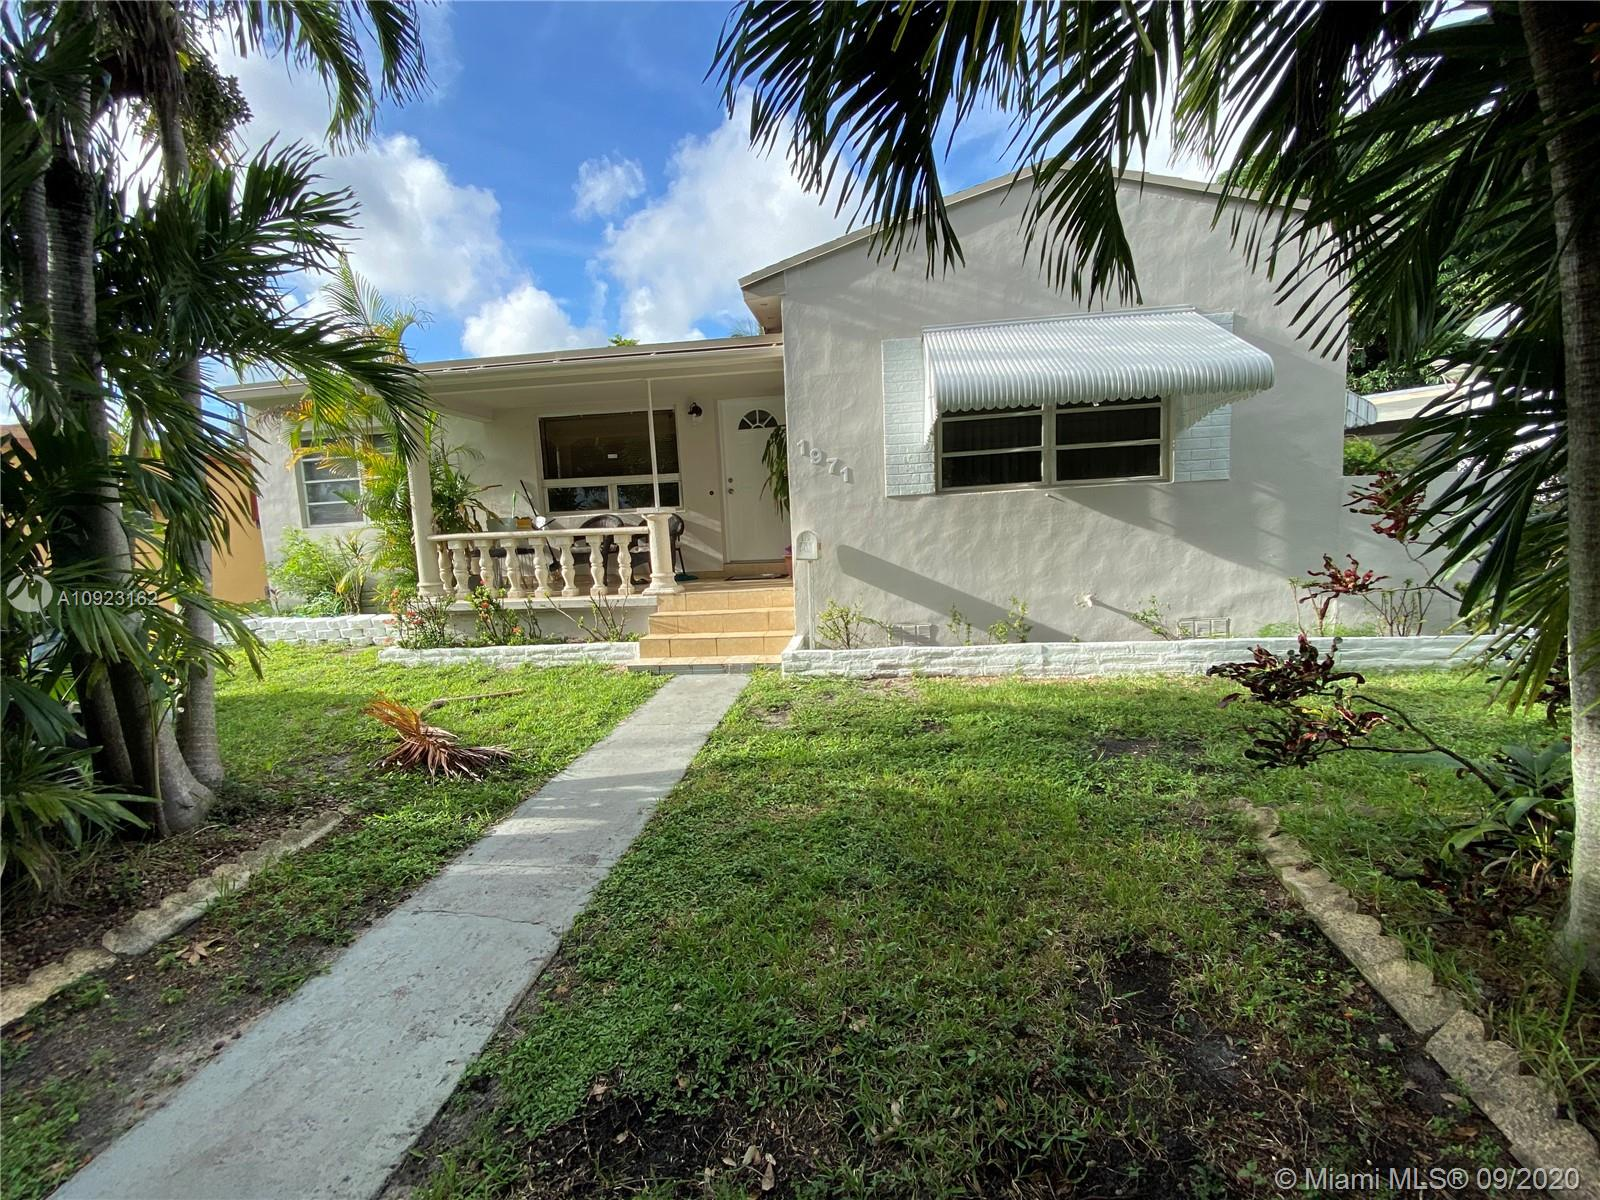 A wonderful gem in North Miami Beach. 2 bedroom and 1 bath home great location and easy access to local shopping centers and major highways. Central A/C and enclosed patio is ready to call it your home.